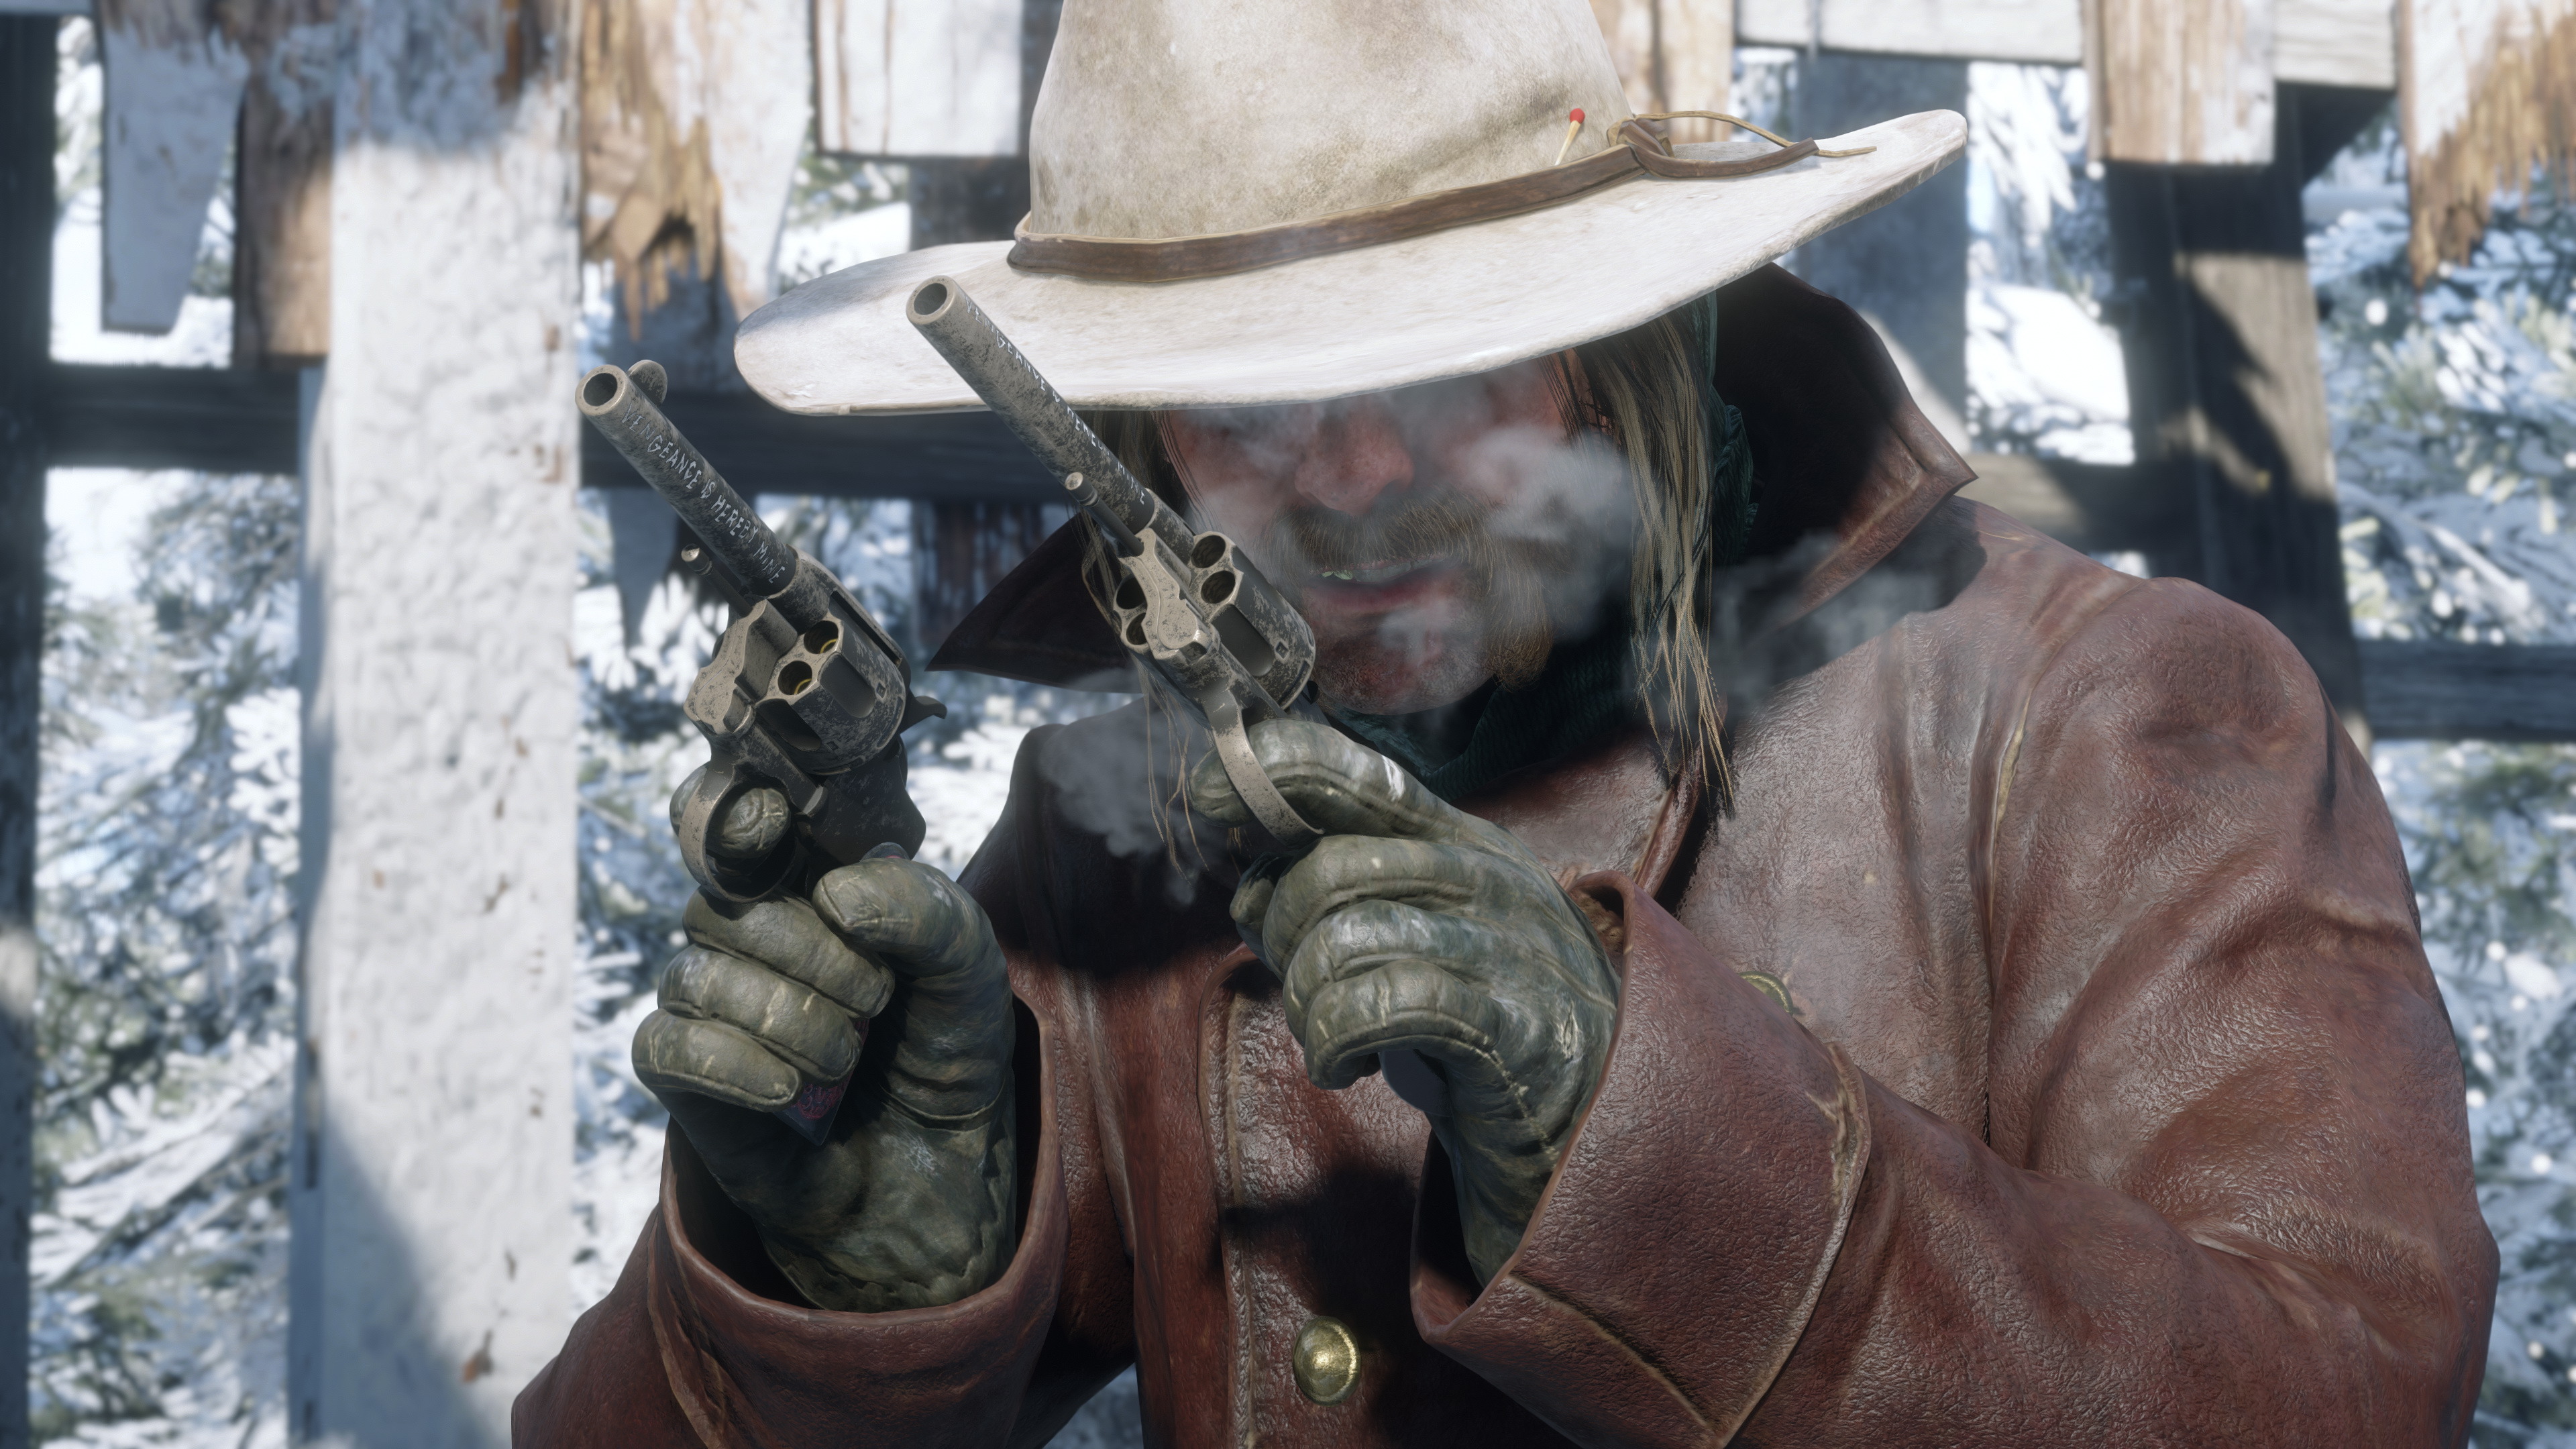 a mustachioed man in a cowboy hat, Micah Bell, dual-wields revolvers in the snow in Red Dead Redemption 2